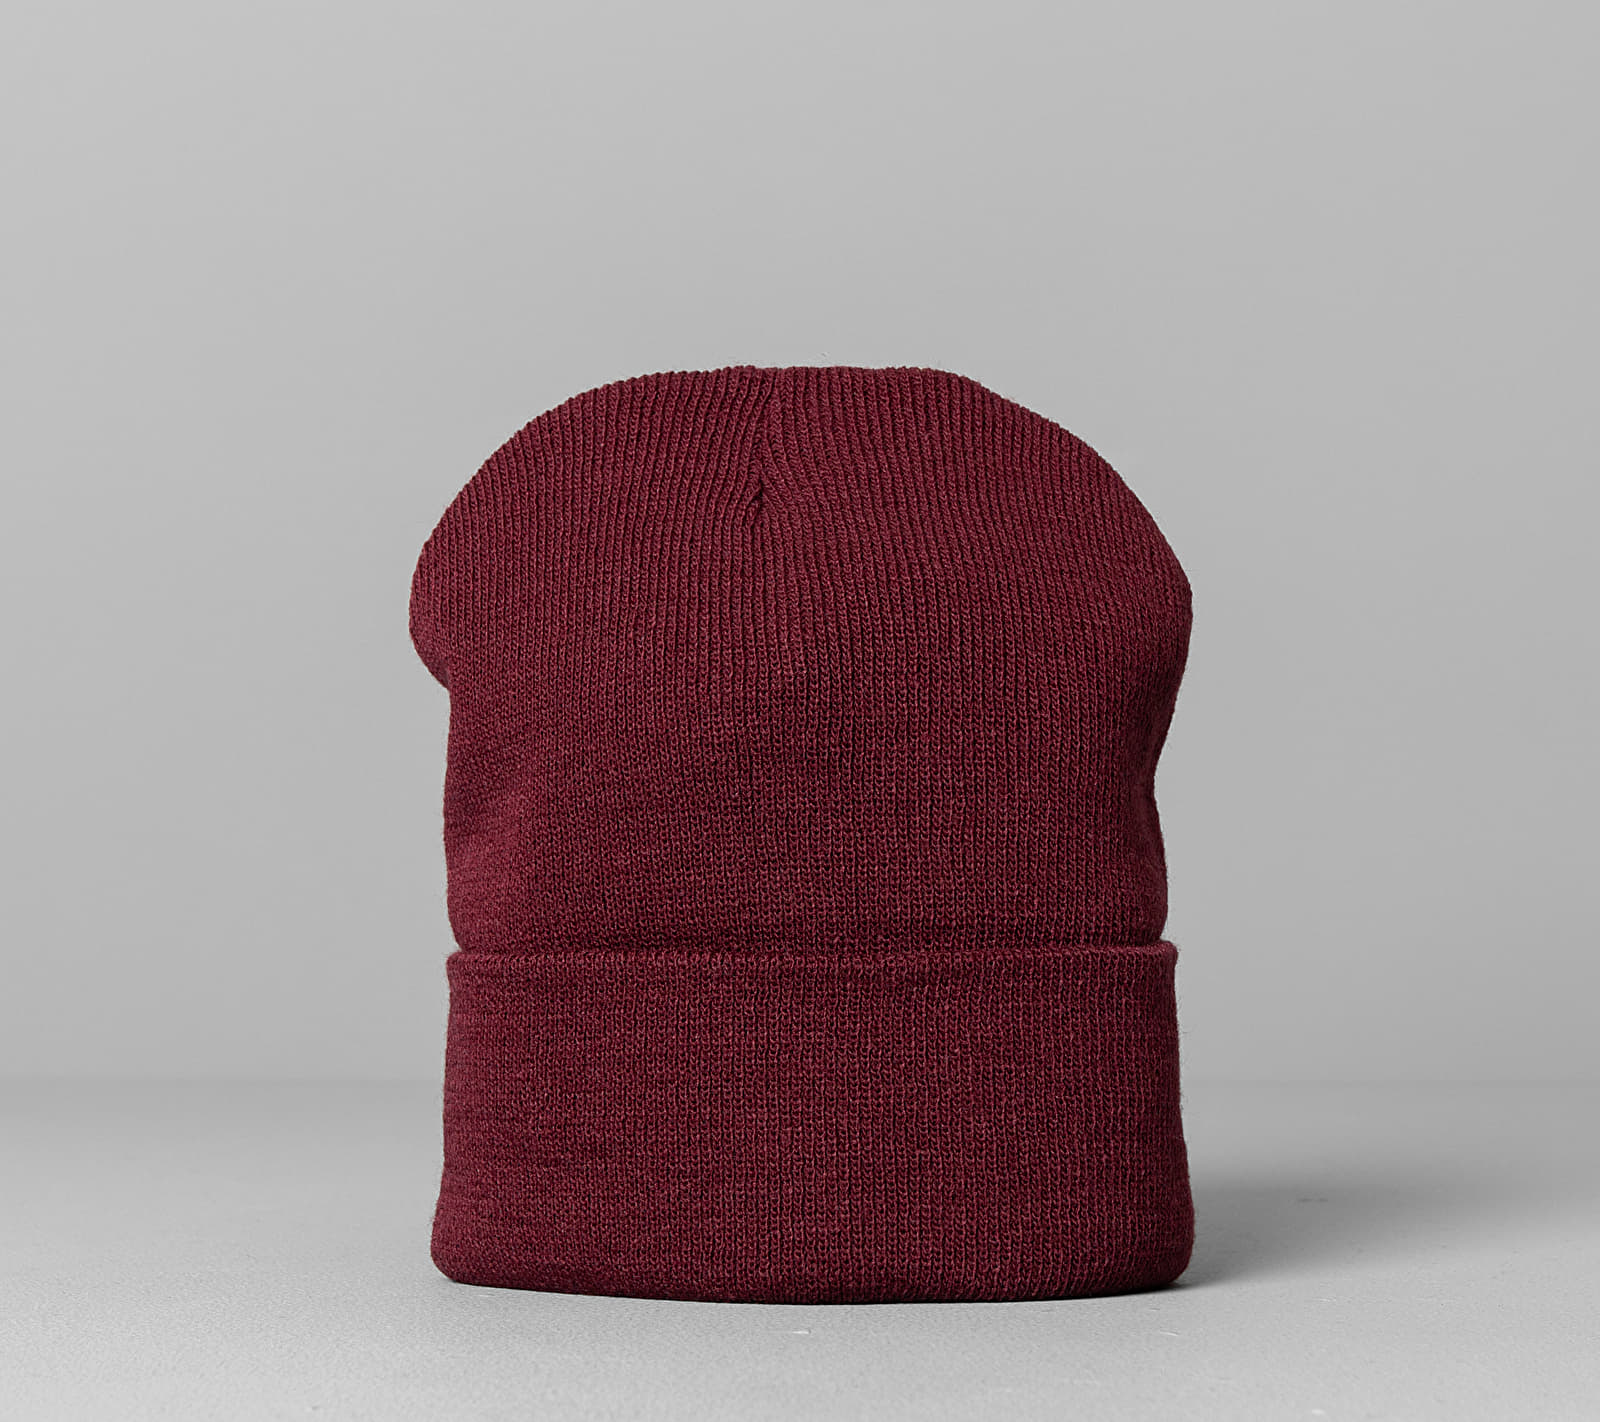 adidas Cuff Knit Maroon, Red